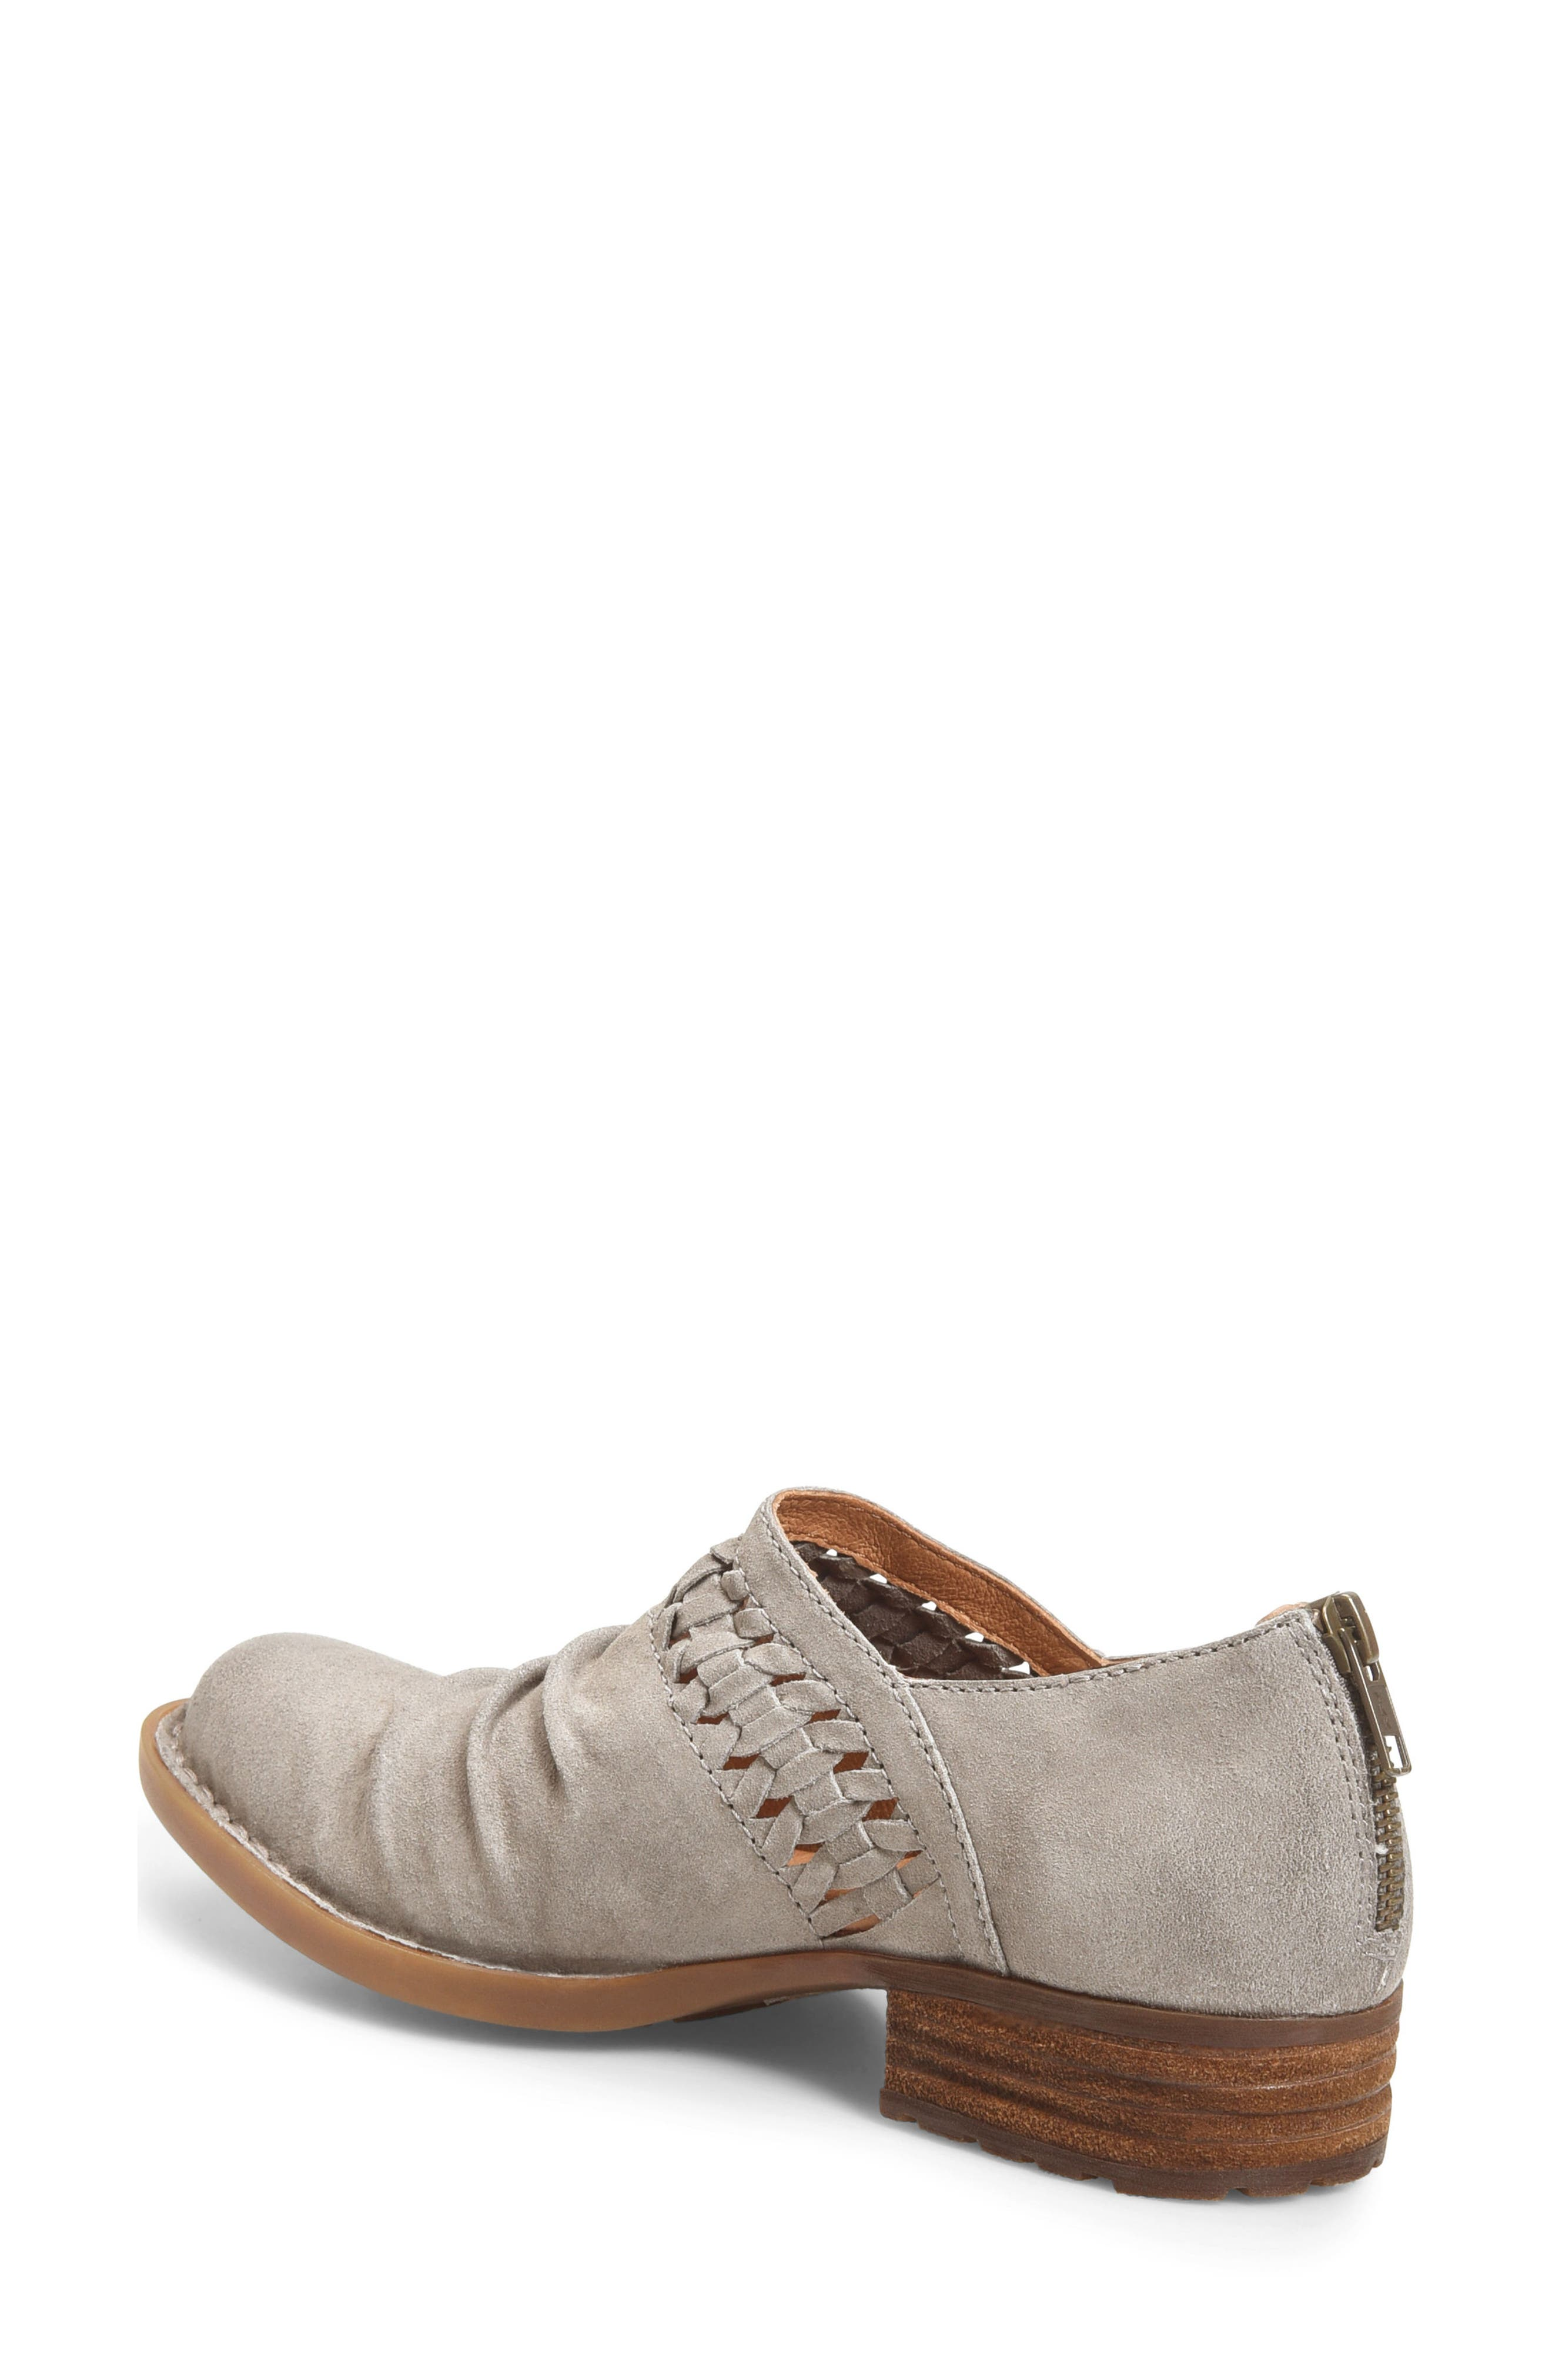 Born Katharina Bootie,                             Alternate thumbnail 2, color,                             Grey Suede